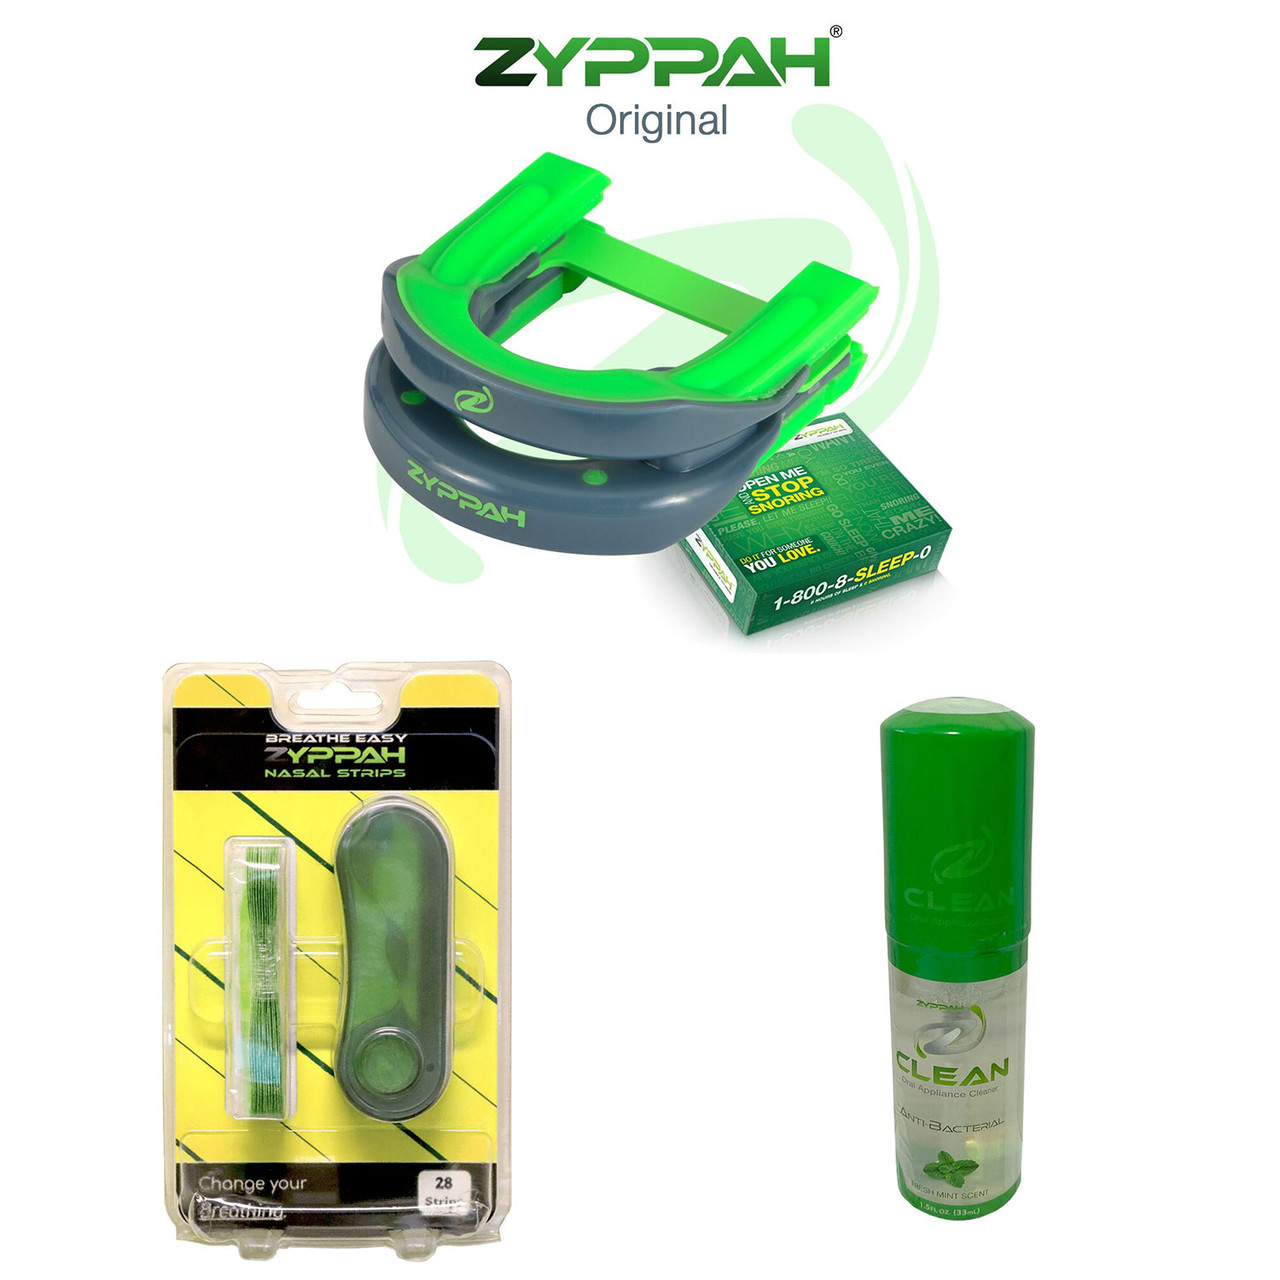 Image of Zyppah Complete Kit